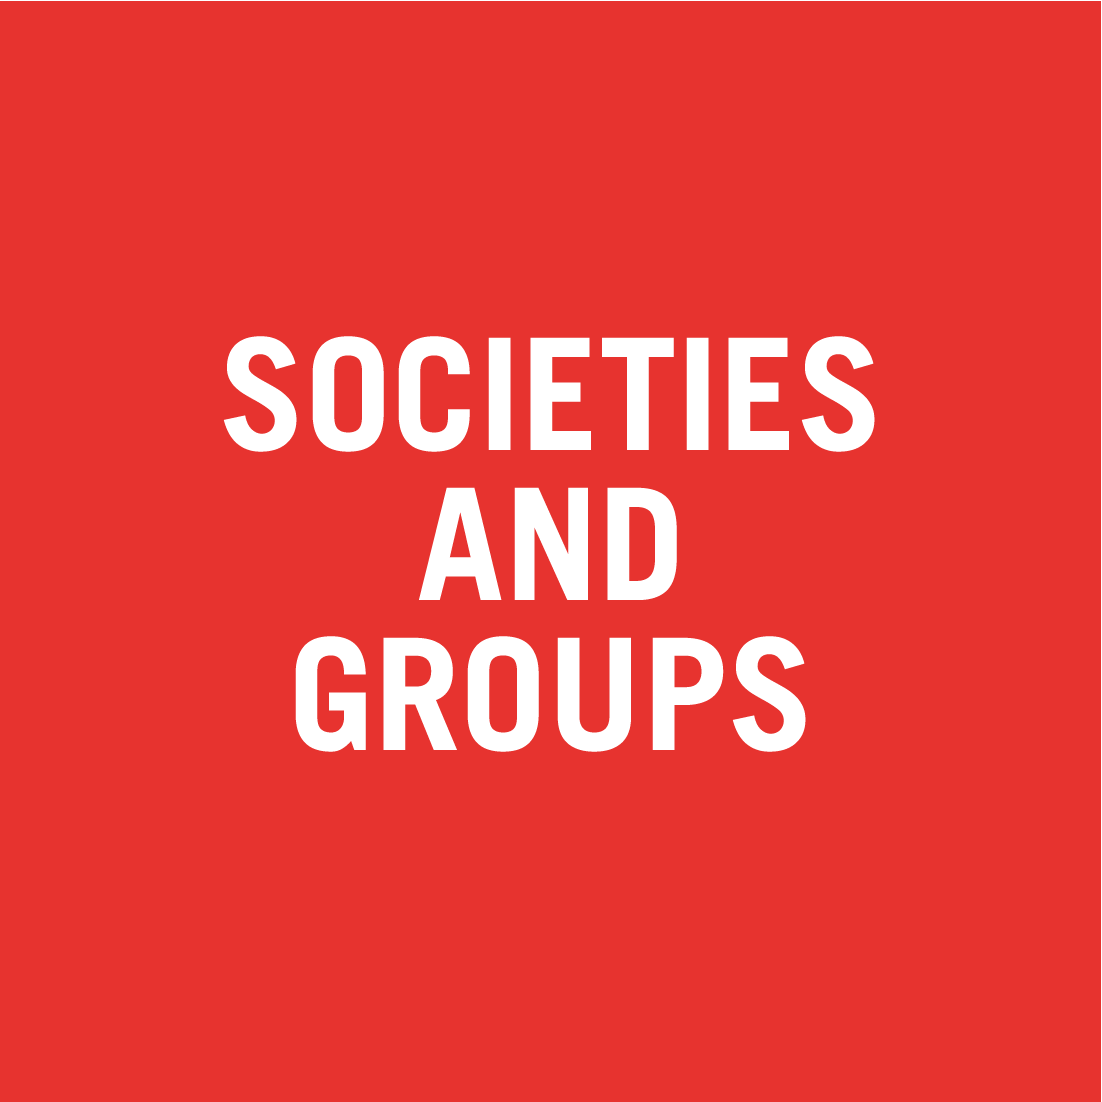 Societies and Groups